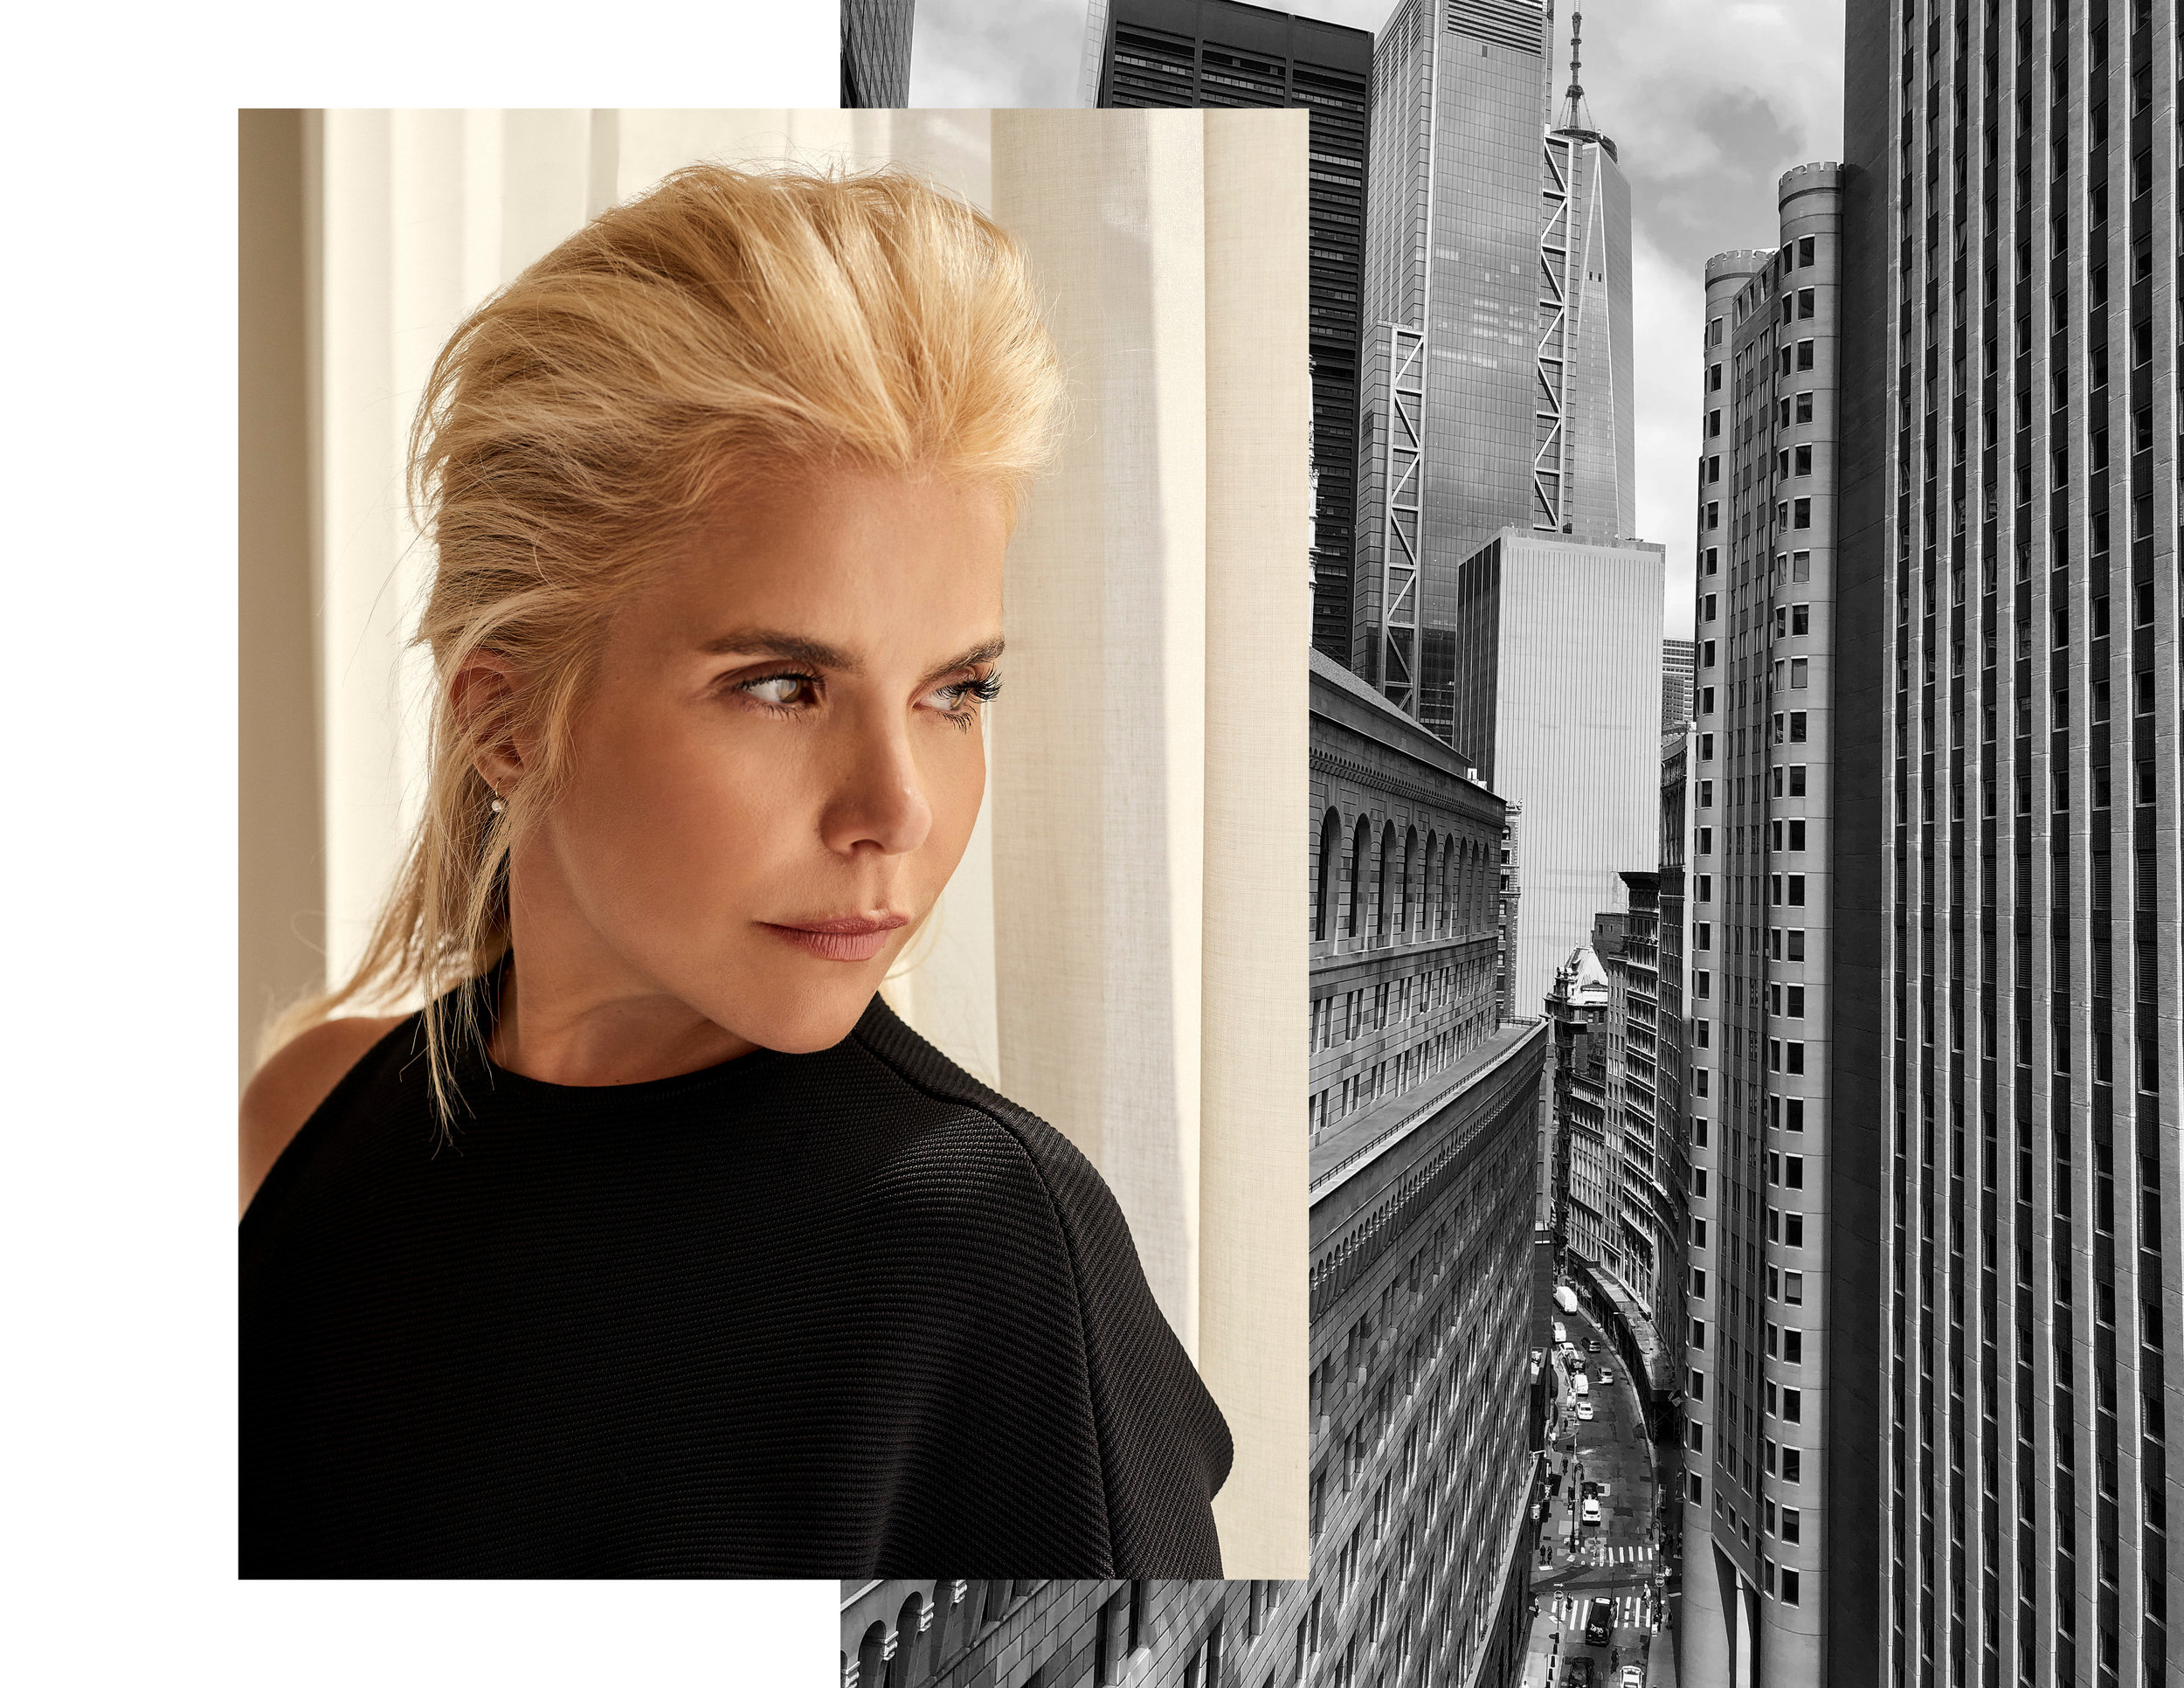 ROSE & IVY x Paloma Faith on Breaking the Mold, Empowering Women and Her New Series Pennyworth